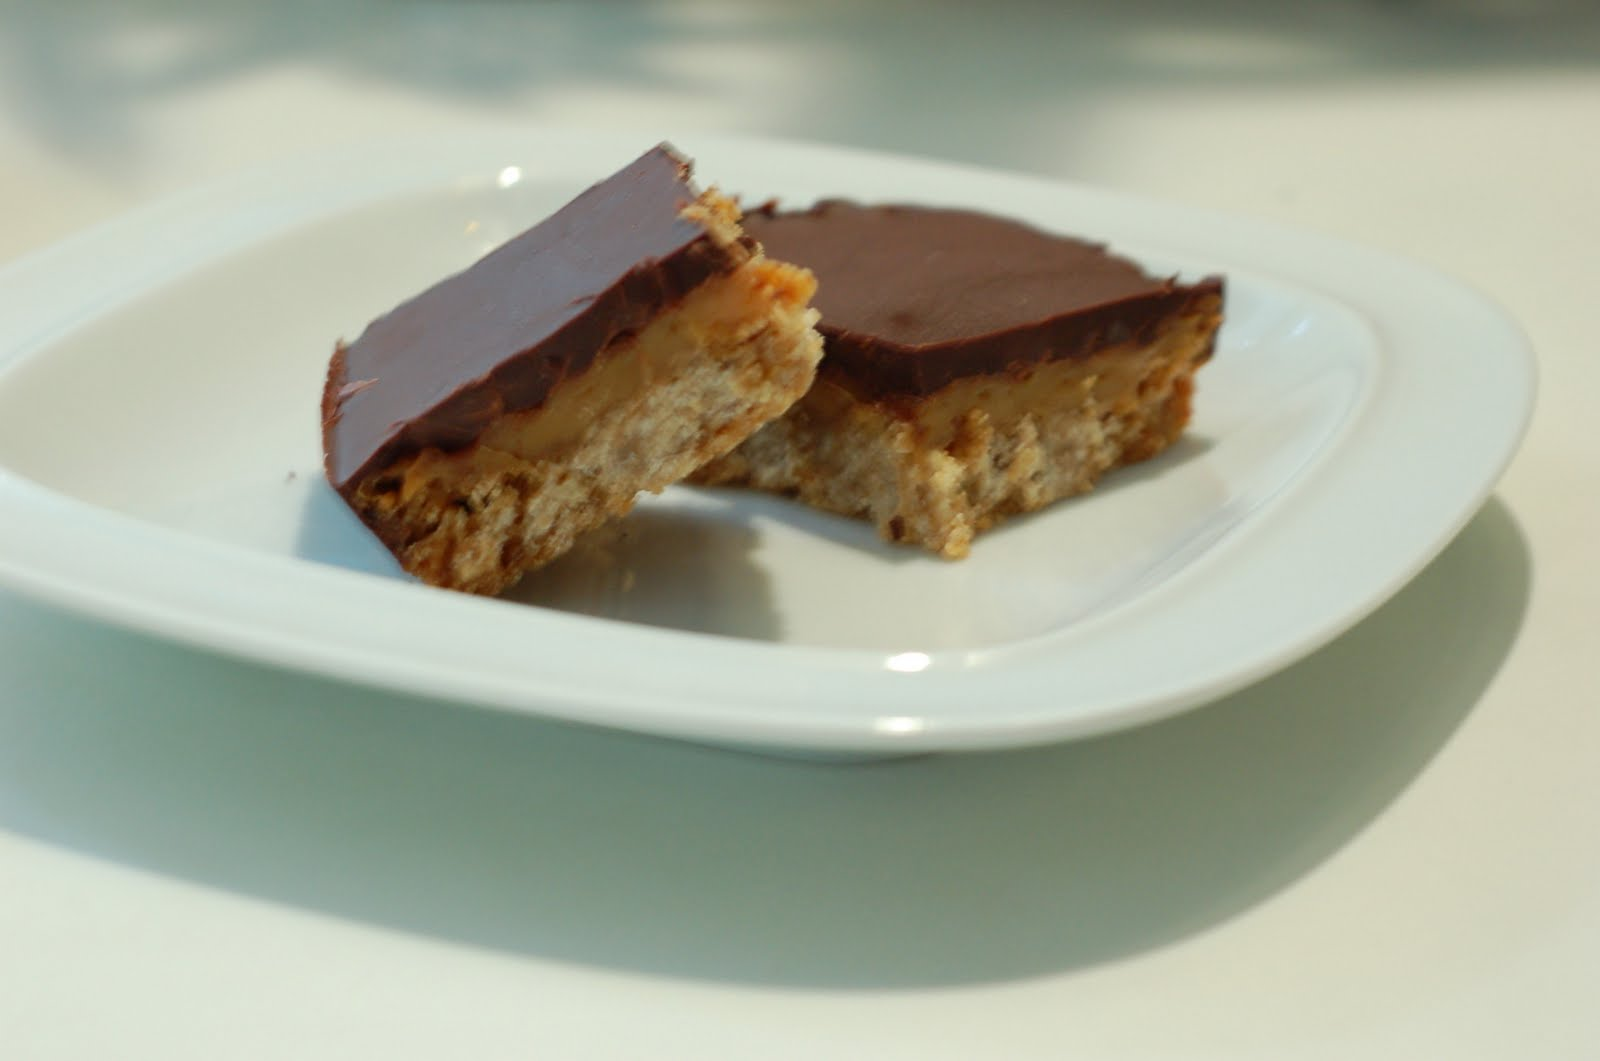 feast with bron: Chocolate Caramel Slice